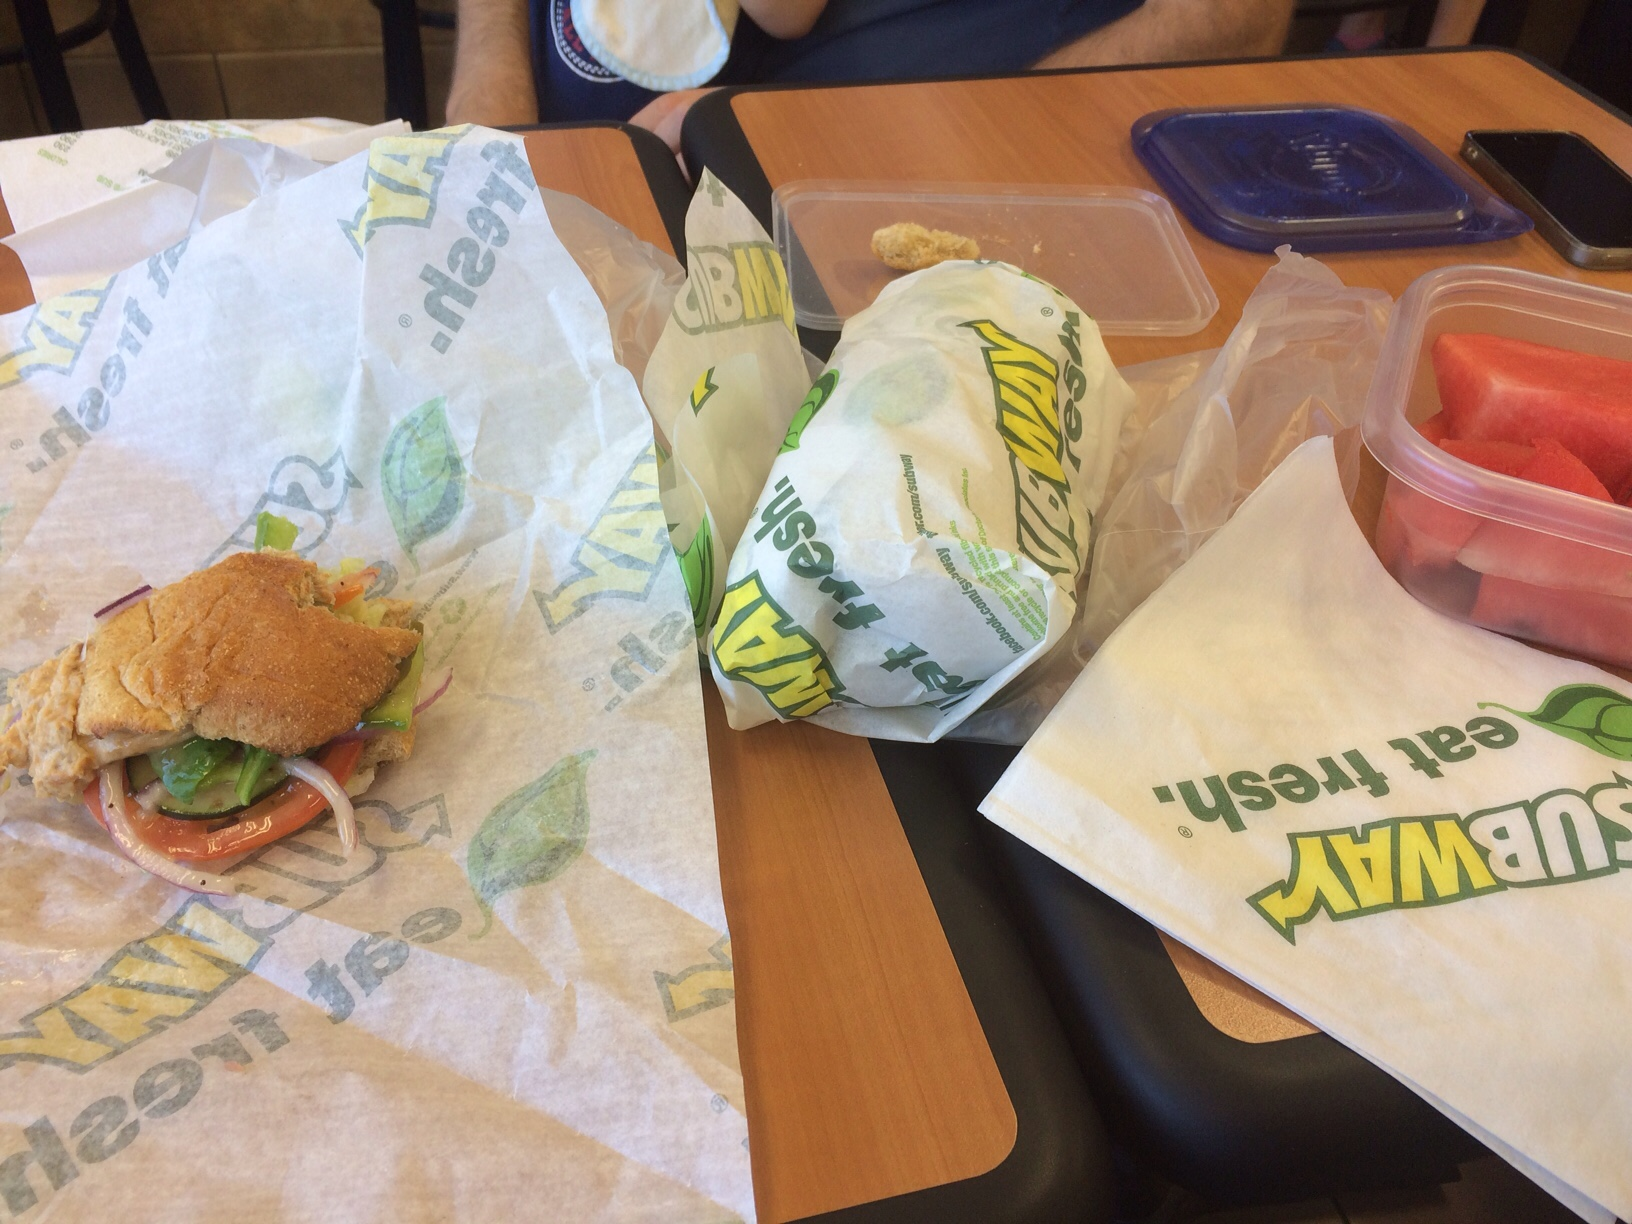 Subway lunch